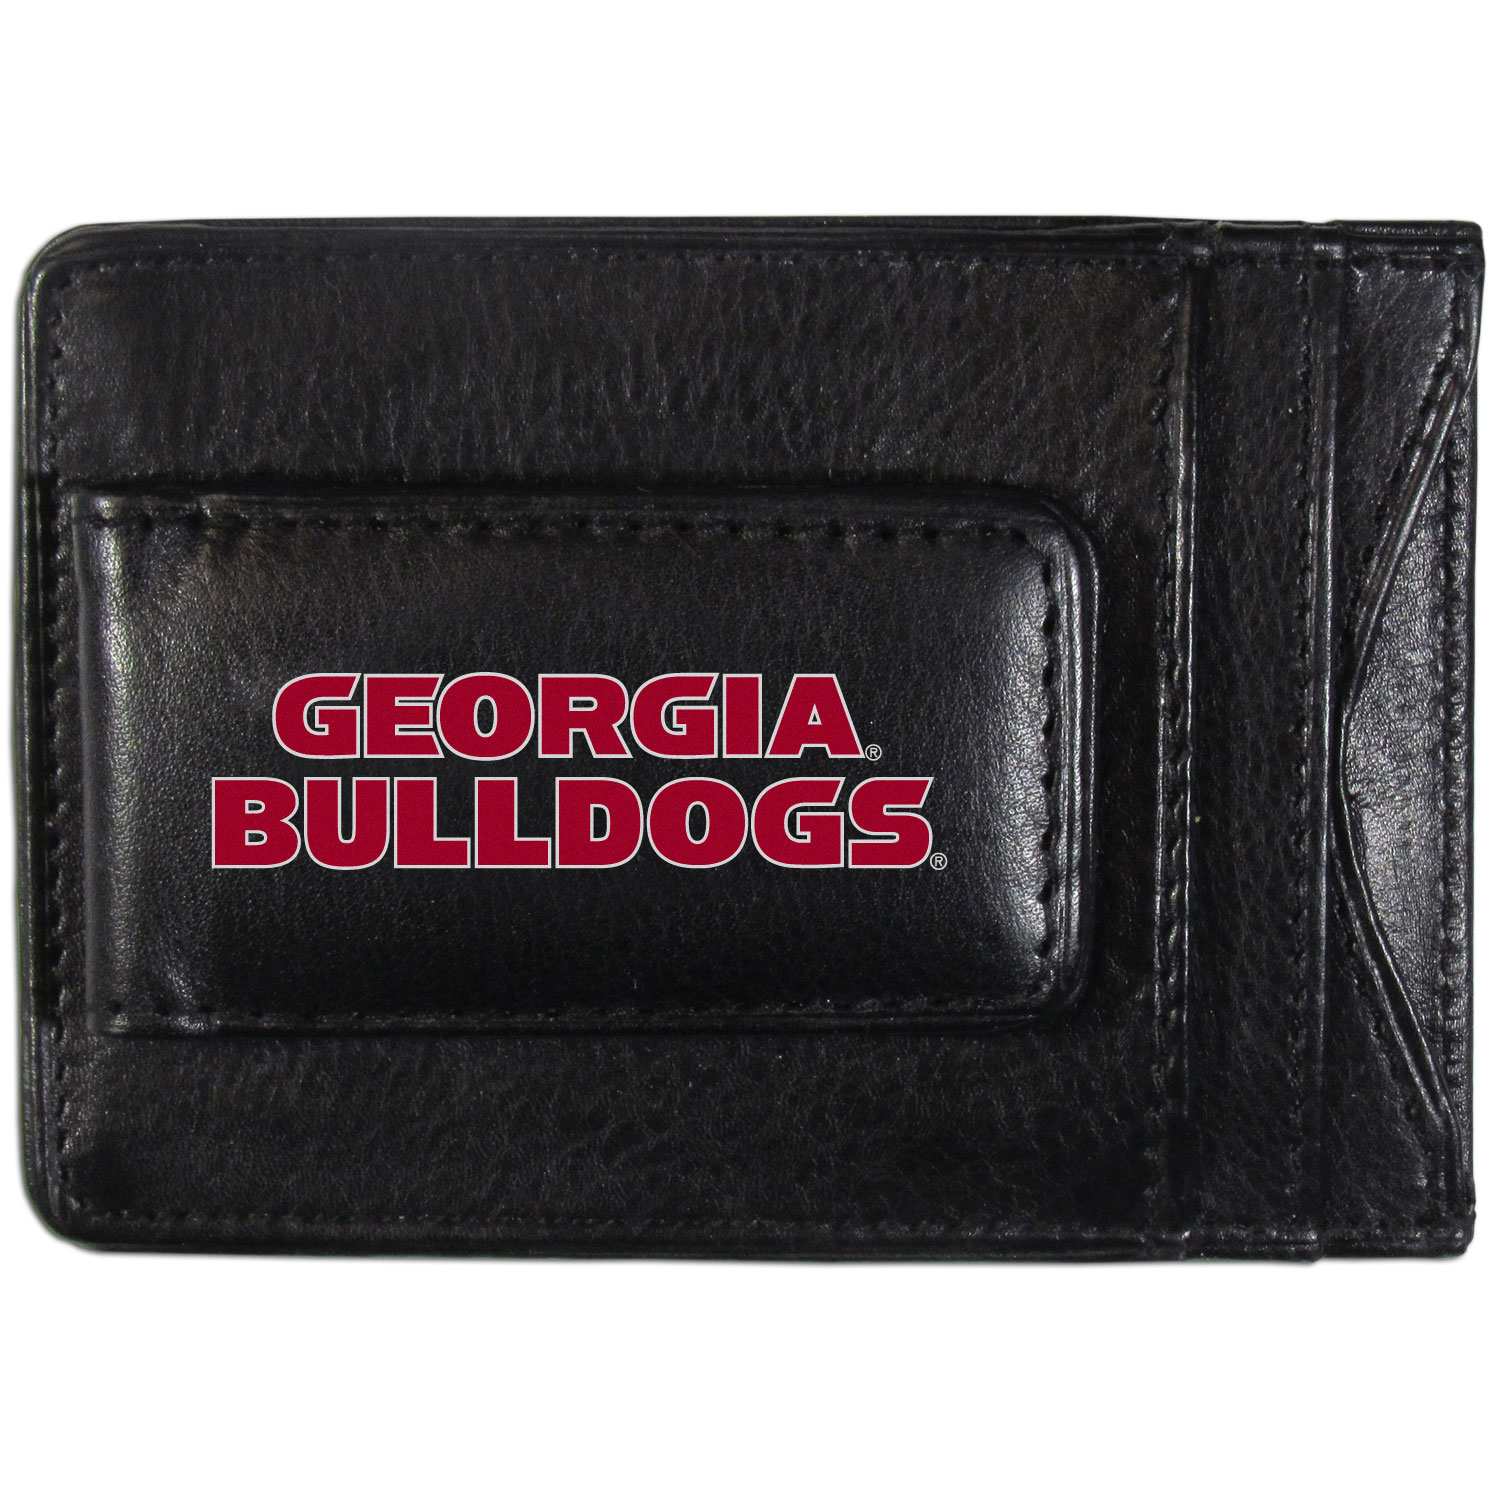 Georgia Bulldogs Logo Leather Cash and Cardholder - This super slim leather wallet lets you have all the benefits of a money clip while keeping the organization of a wallet. On one side of this front pocket wallet there is a strong, magnetic money clip to keep your cash easily accessible and the?Georgia Bulldogs team logo on the front. The versatile men's accessory is a perfect addition to your fan apparel.